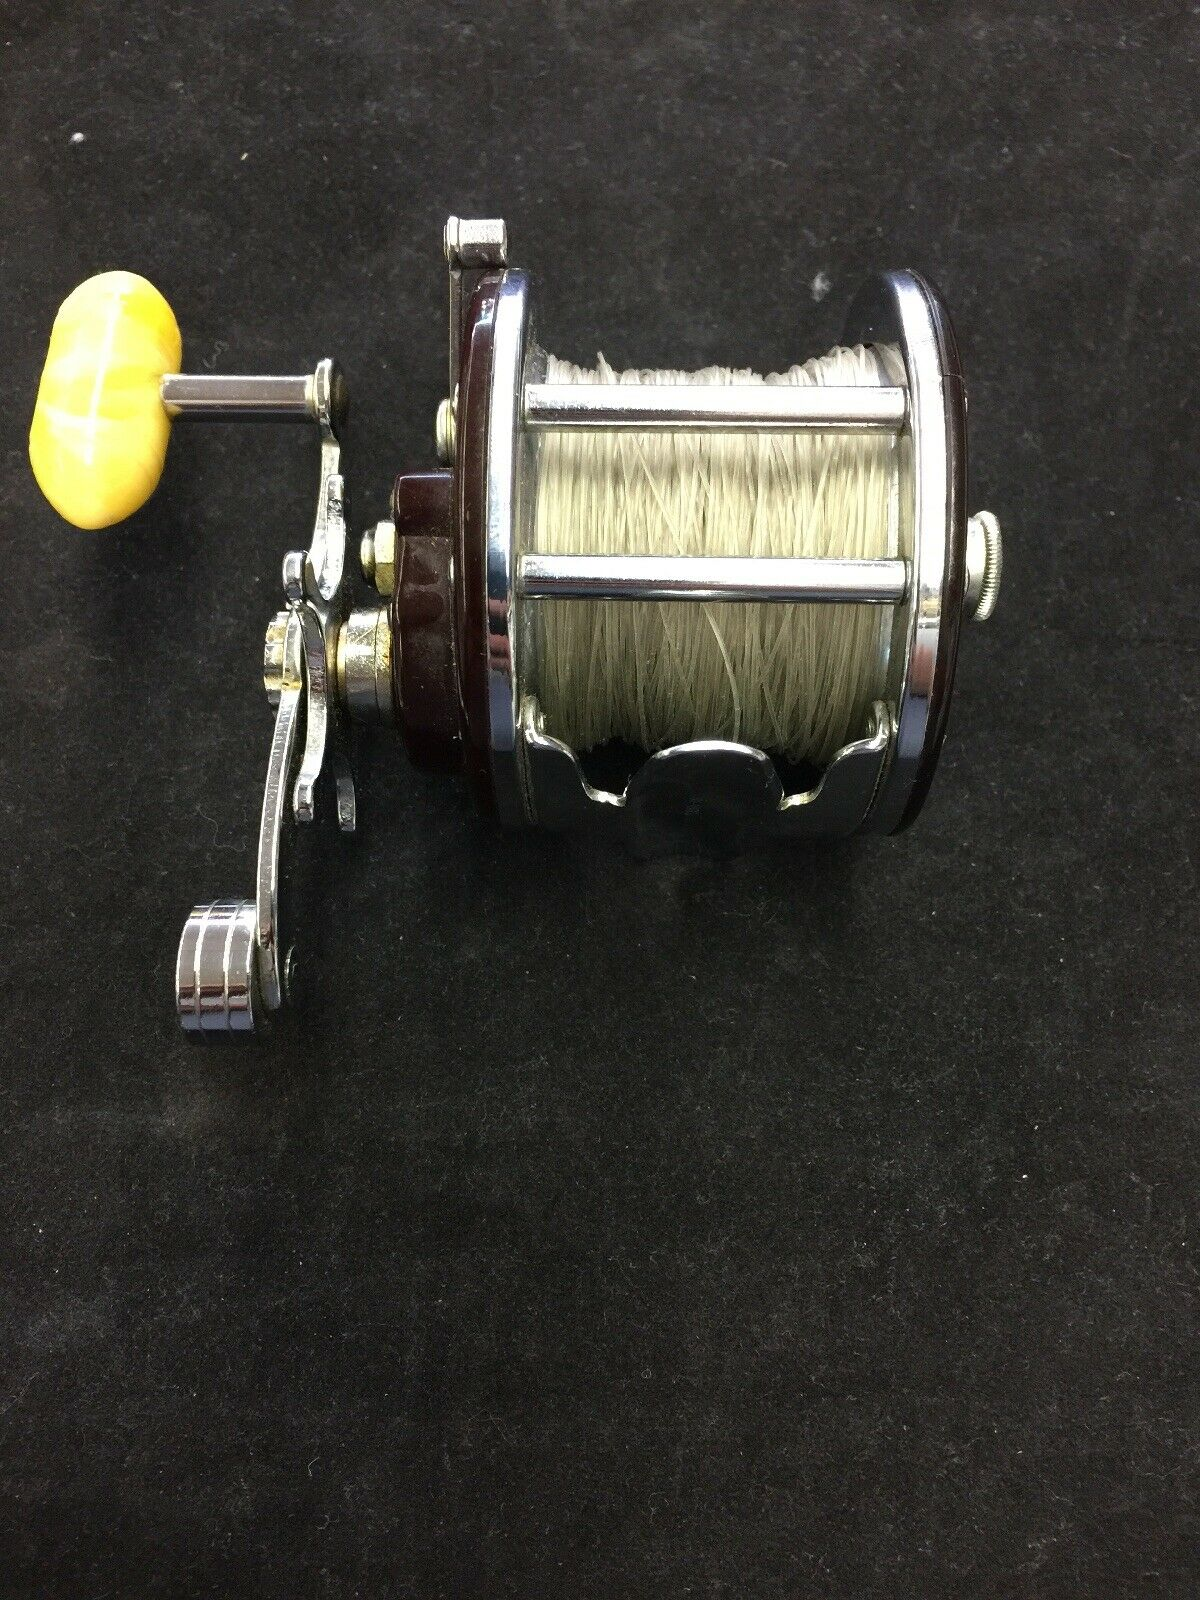 Penn Monofil No. 27 near MINT pesca Reel Cracked